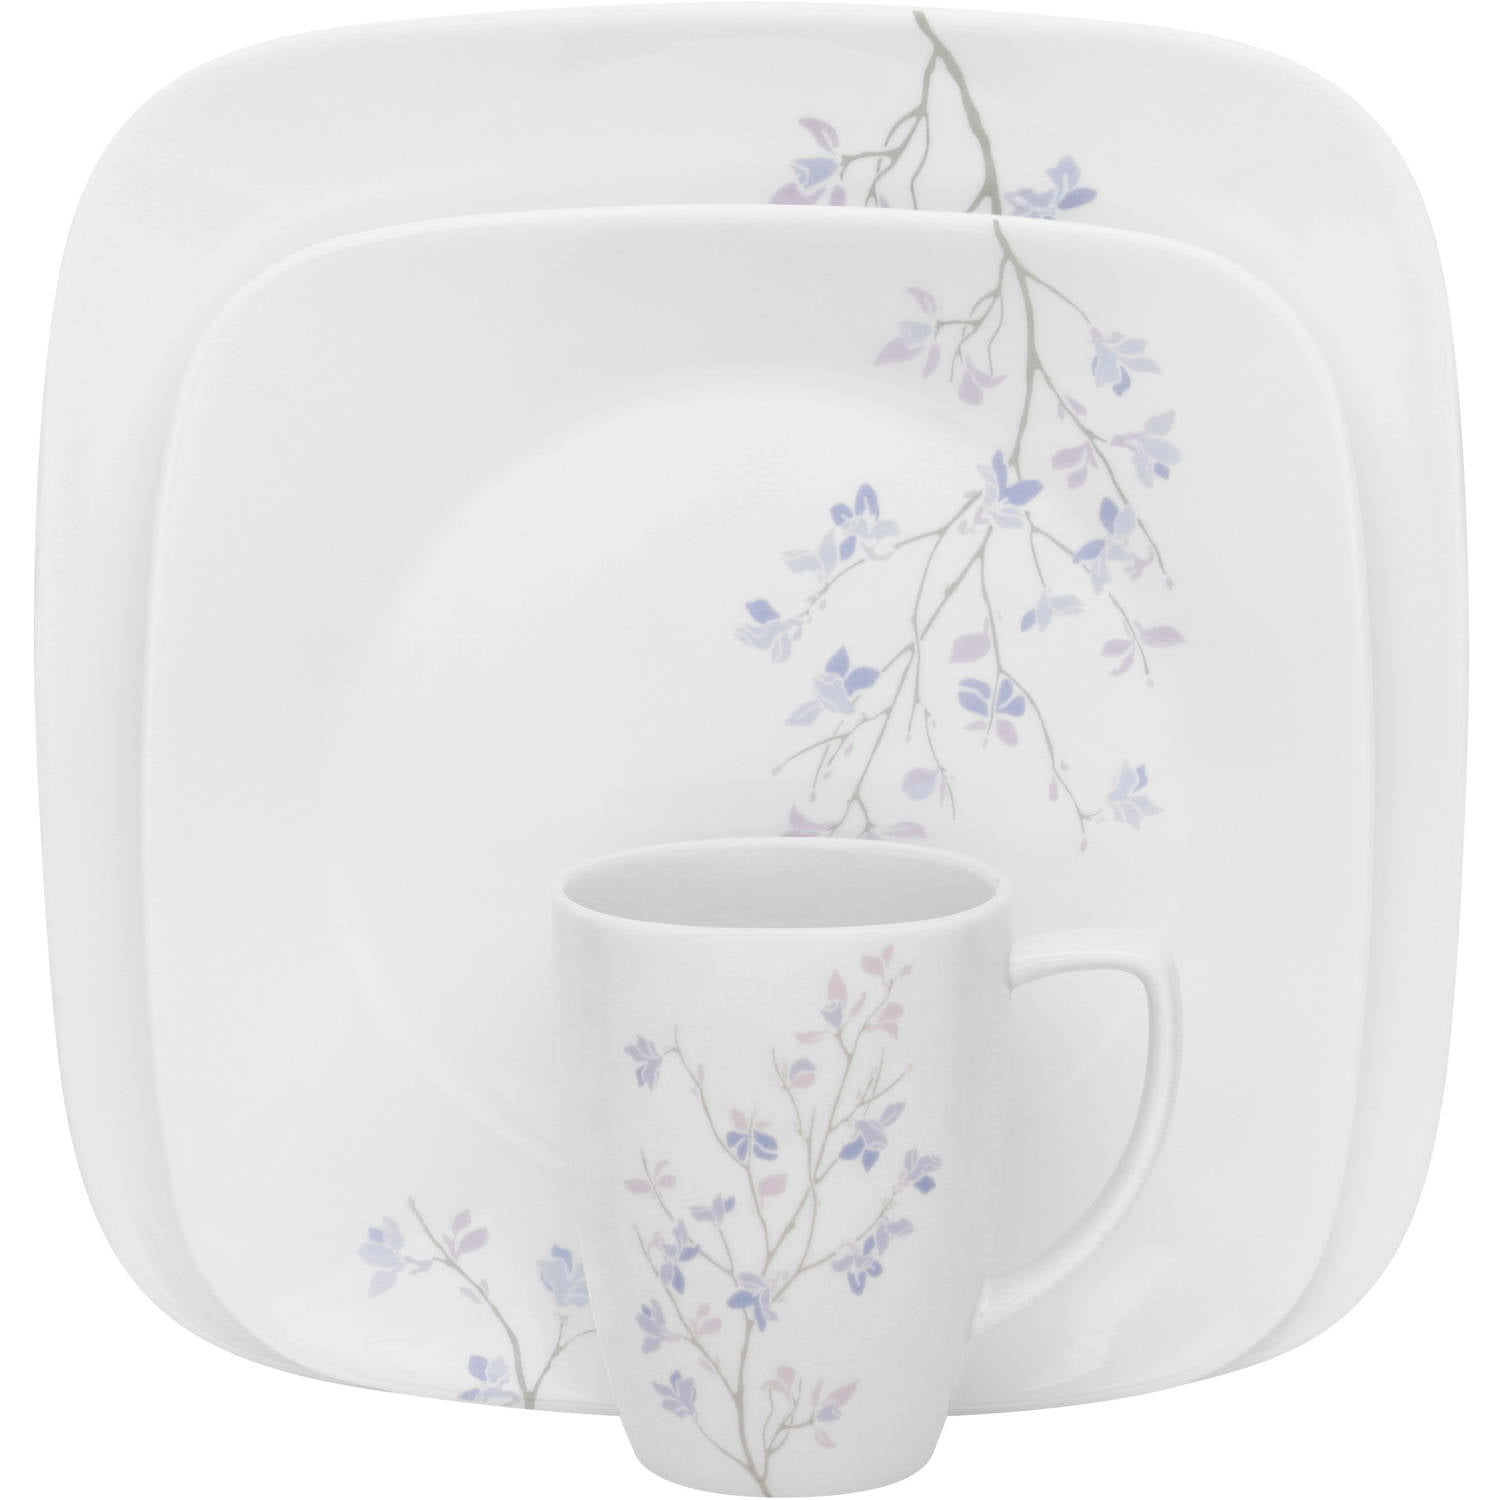 Corelle Squares Jacaranda 32-Piece Dinnerware Value Bundle - Walmart.com  sc 1 st  Walmart & Corelle Squares Jacaranda 32-Piece Dinnerware Value Bundle ...